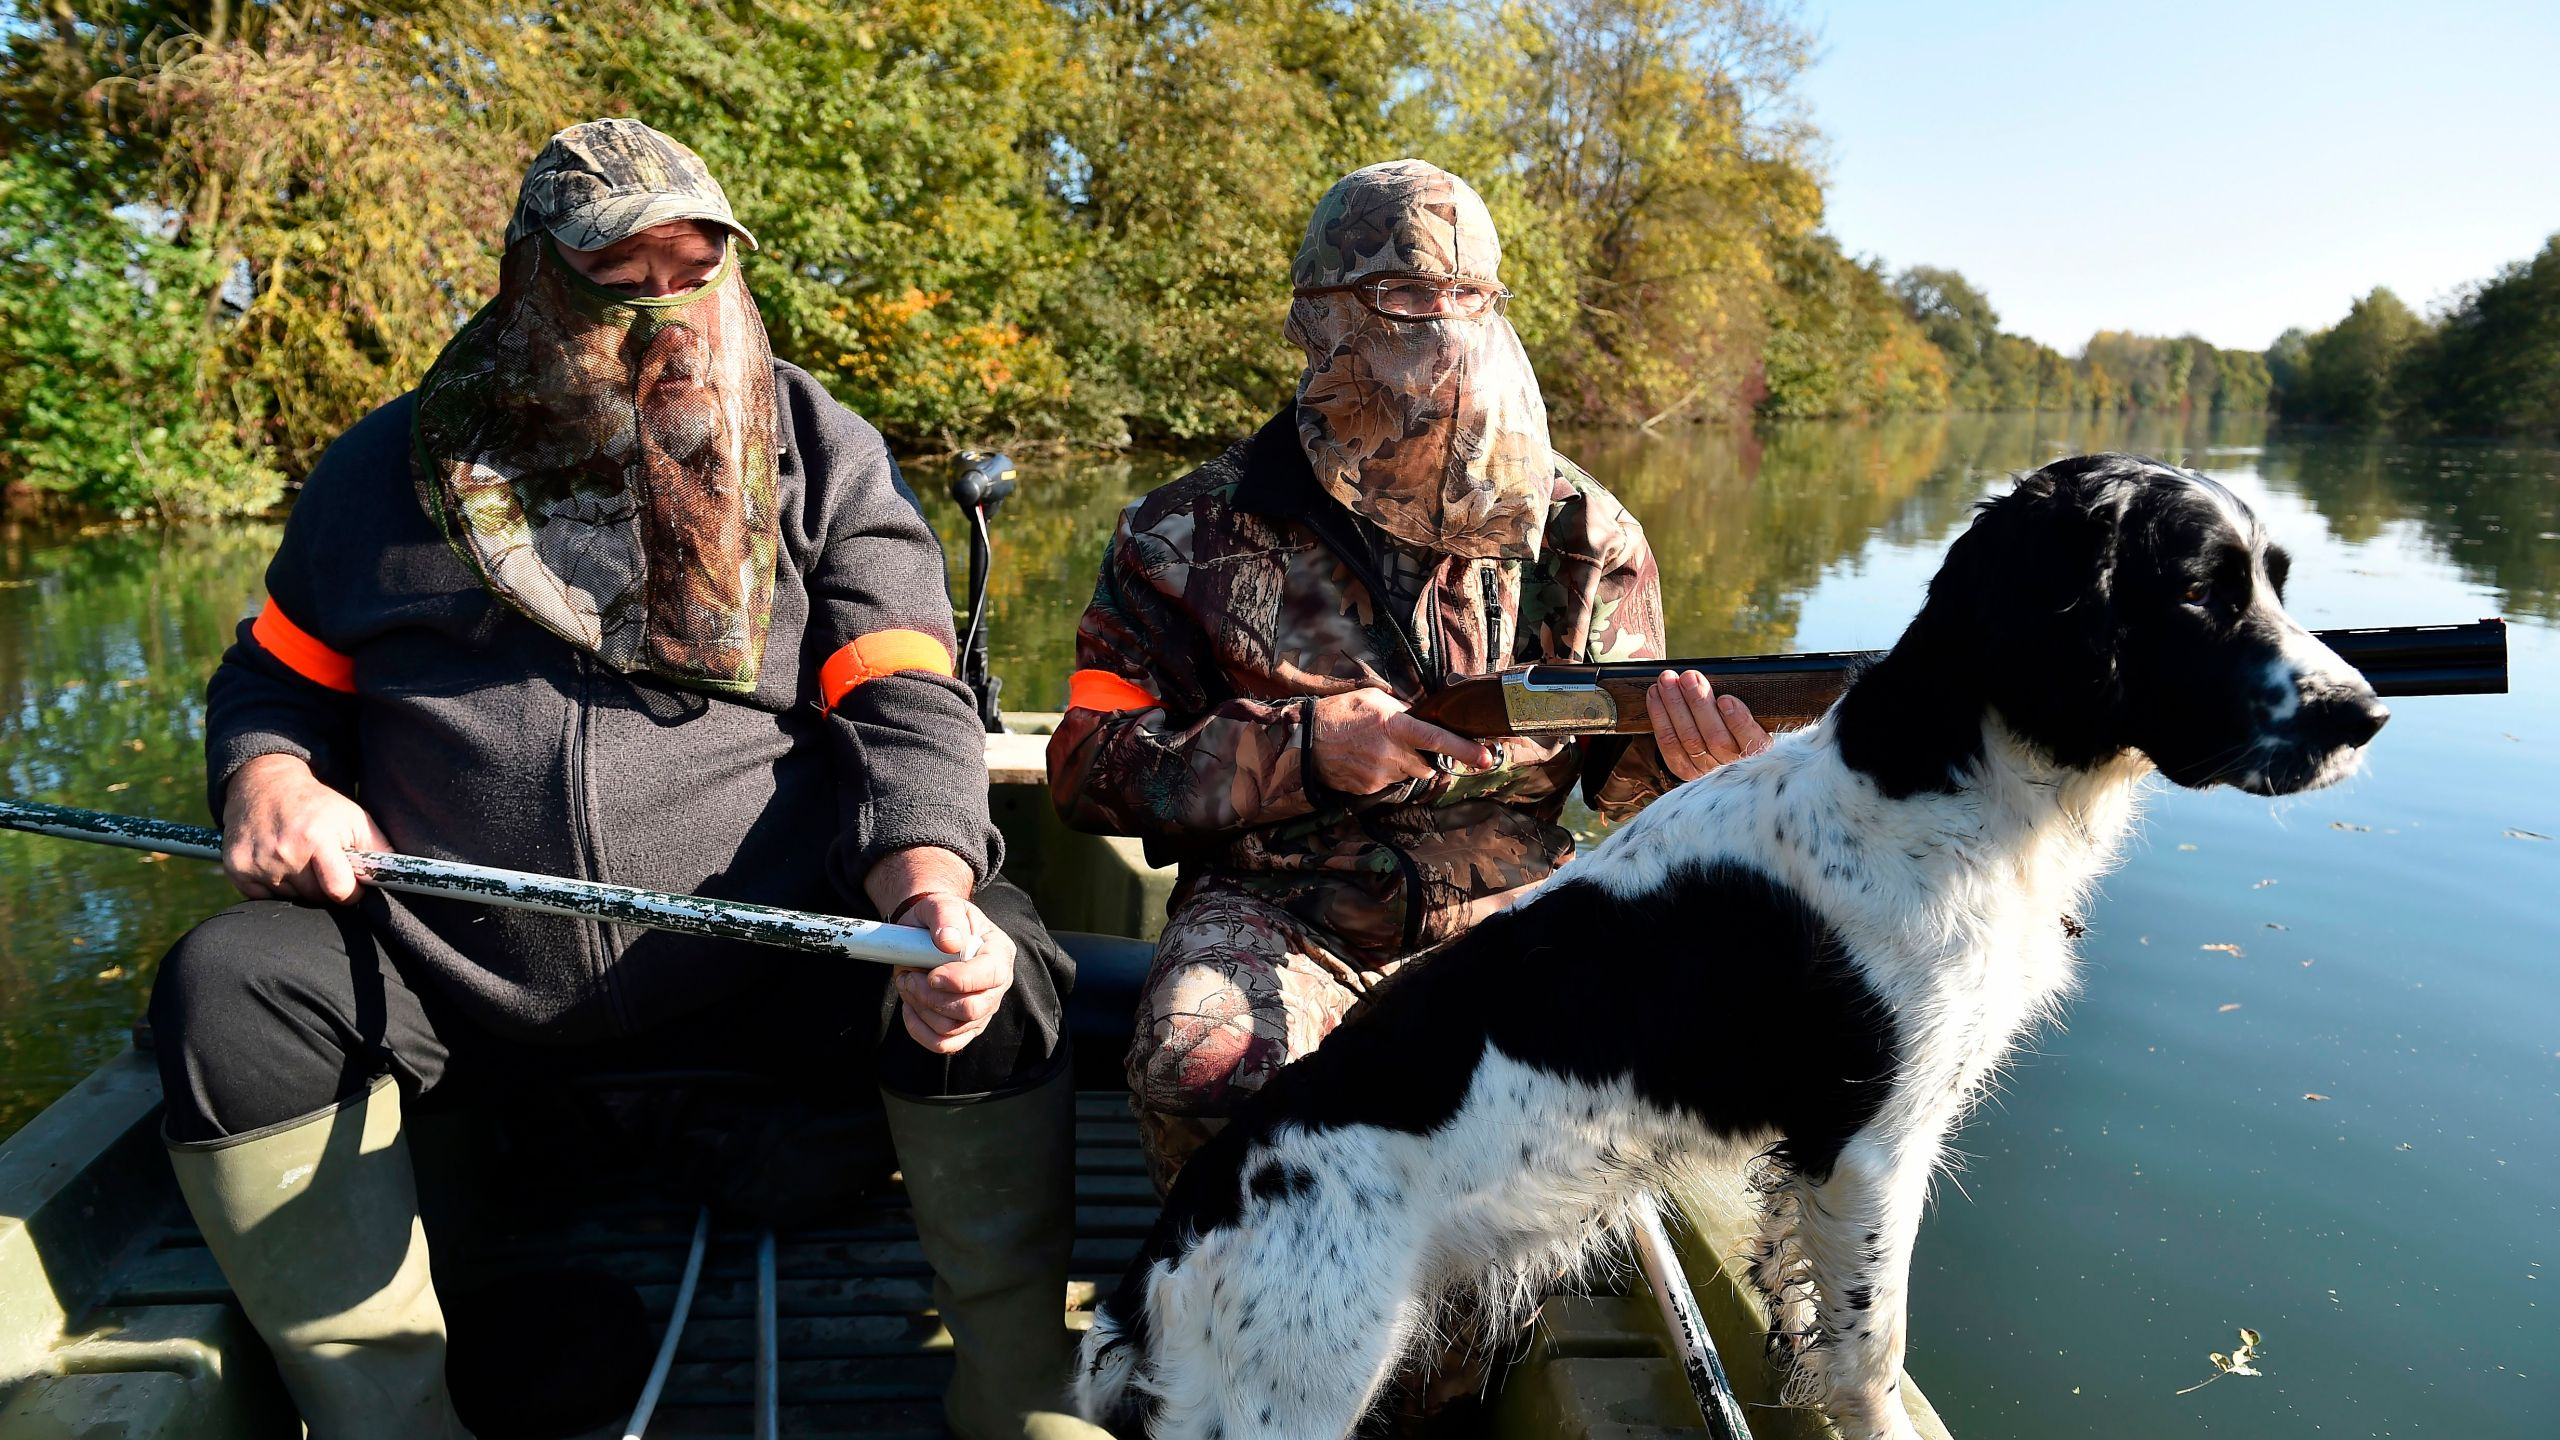 Waterfowl hunters with their Springer Spaniel dog, steer a boat on Le Loir river, during a duck hunting in Vaas, France, on Oct. 15, 2017. (Credit: JEAN-FRANCOIS MONIER/AFP/Getty Images)